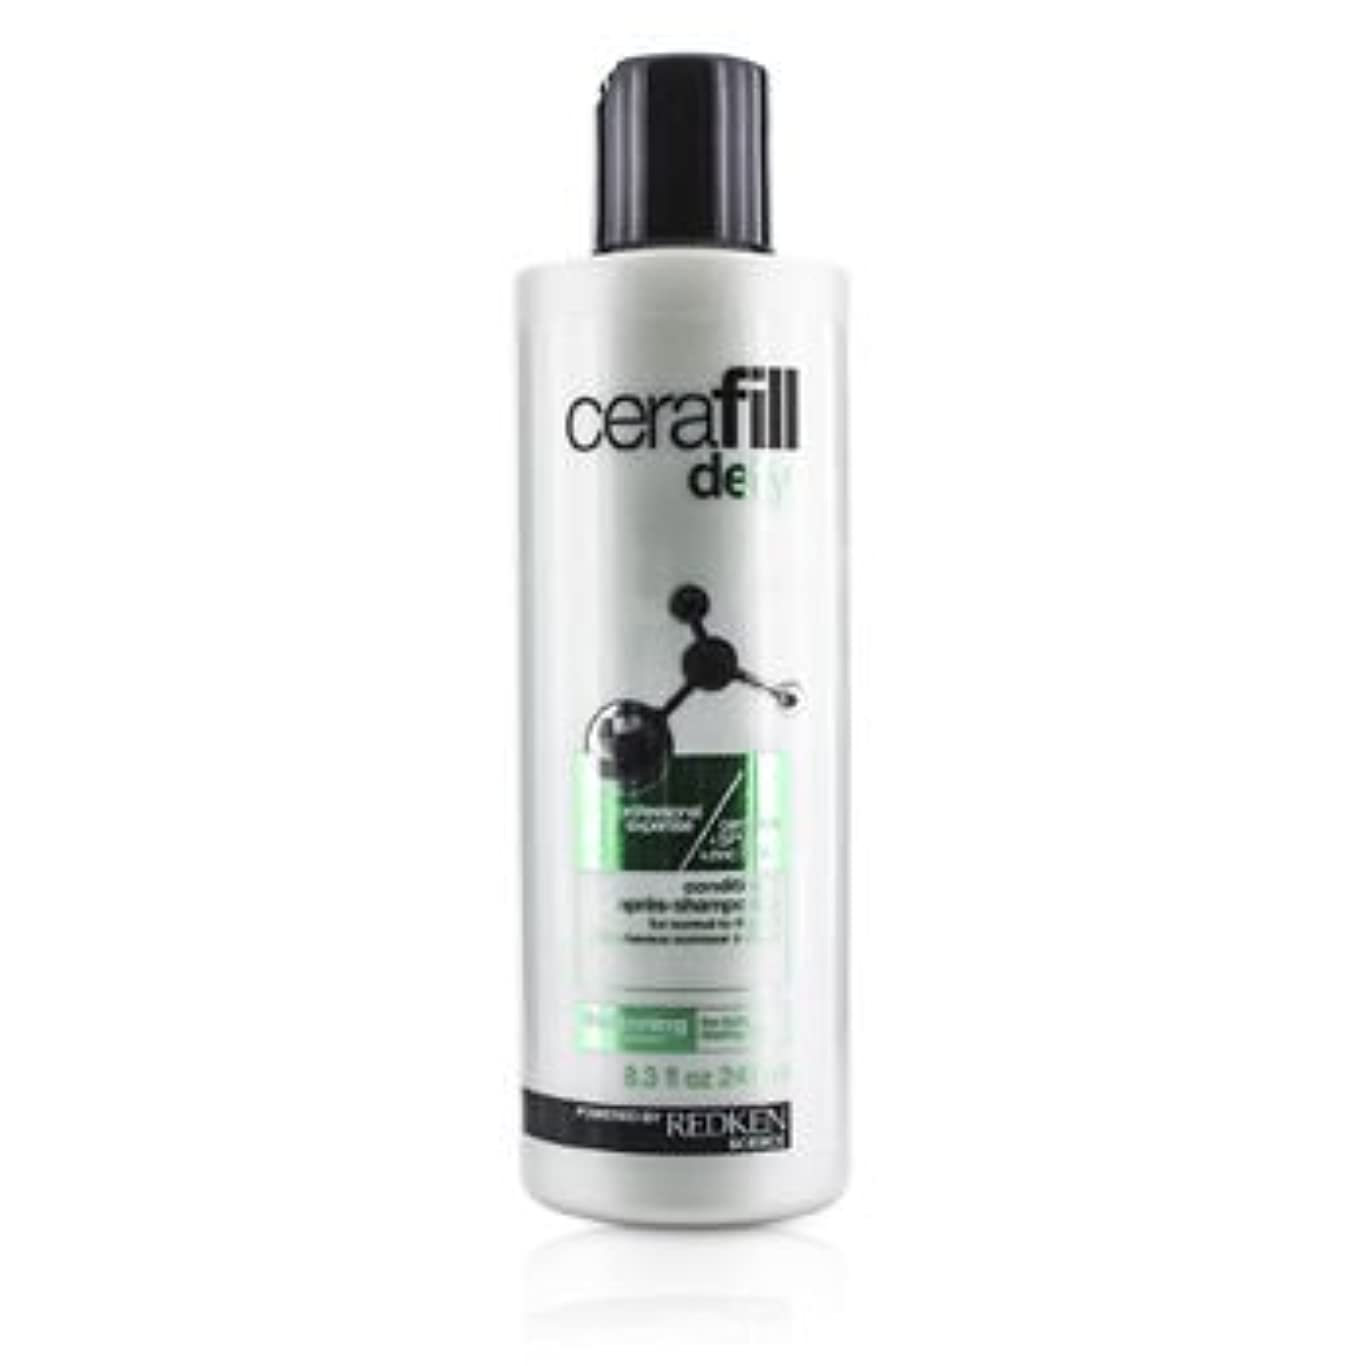 付添人できるどうしたの[Redken] Cerafill Defy Thickening Conditioner (For Normal to Thin Hair) 245ml/8.3oz